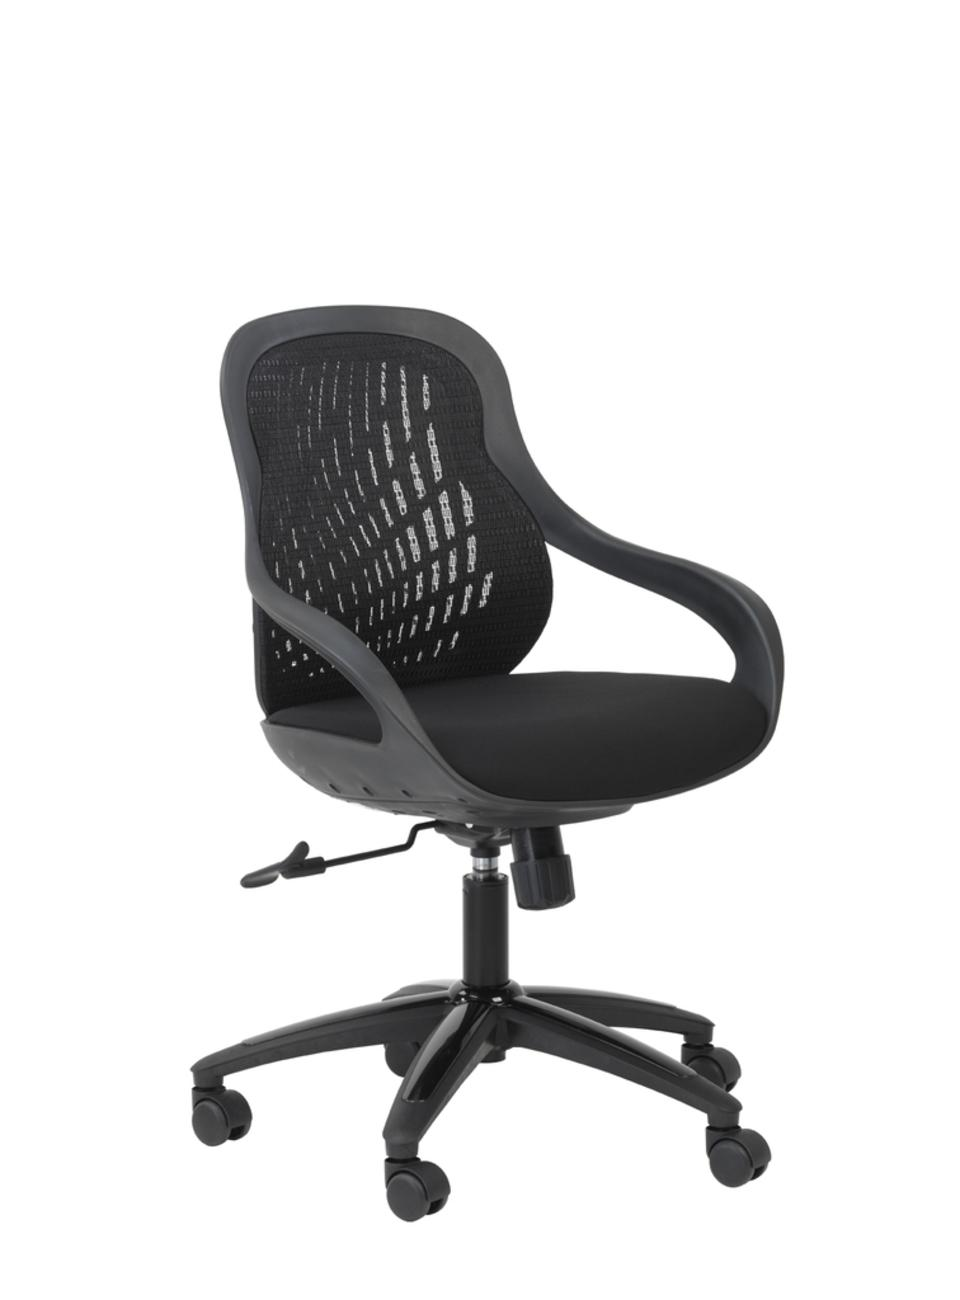 180R Designer Mesh Chair